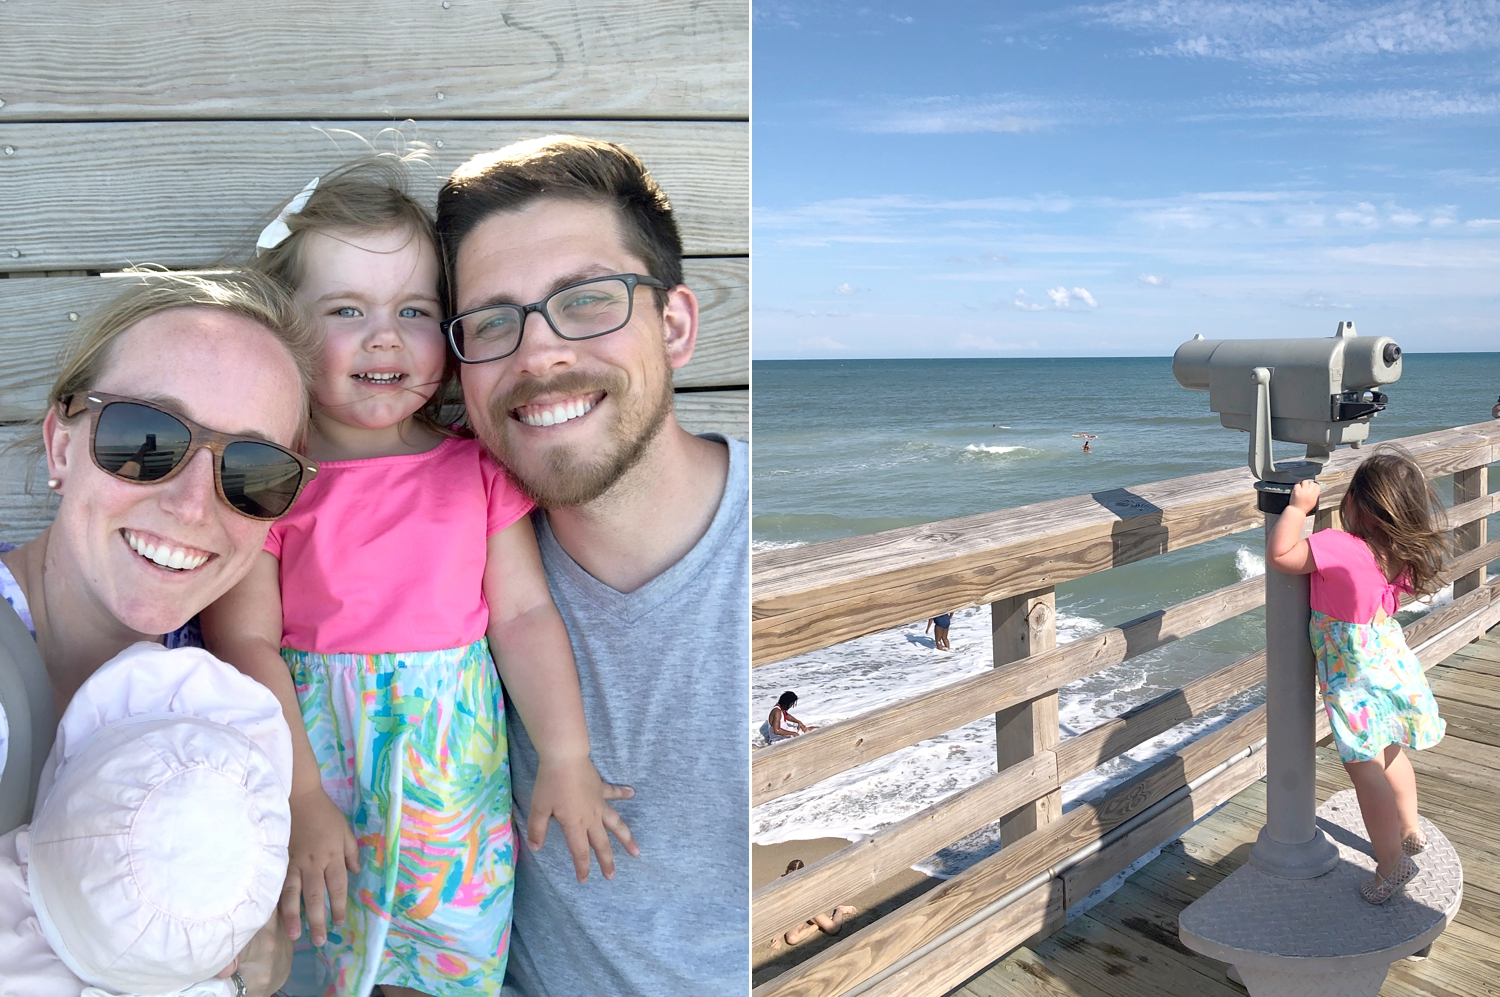 We had to visit the pier!